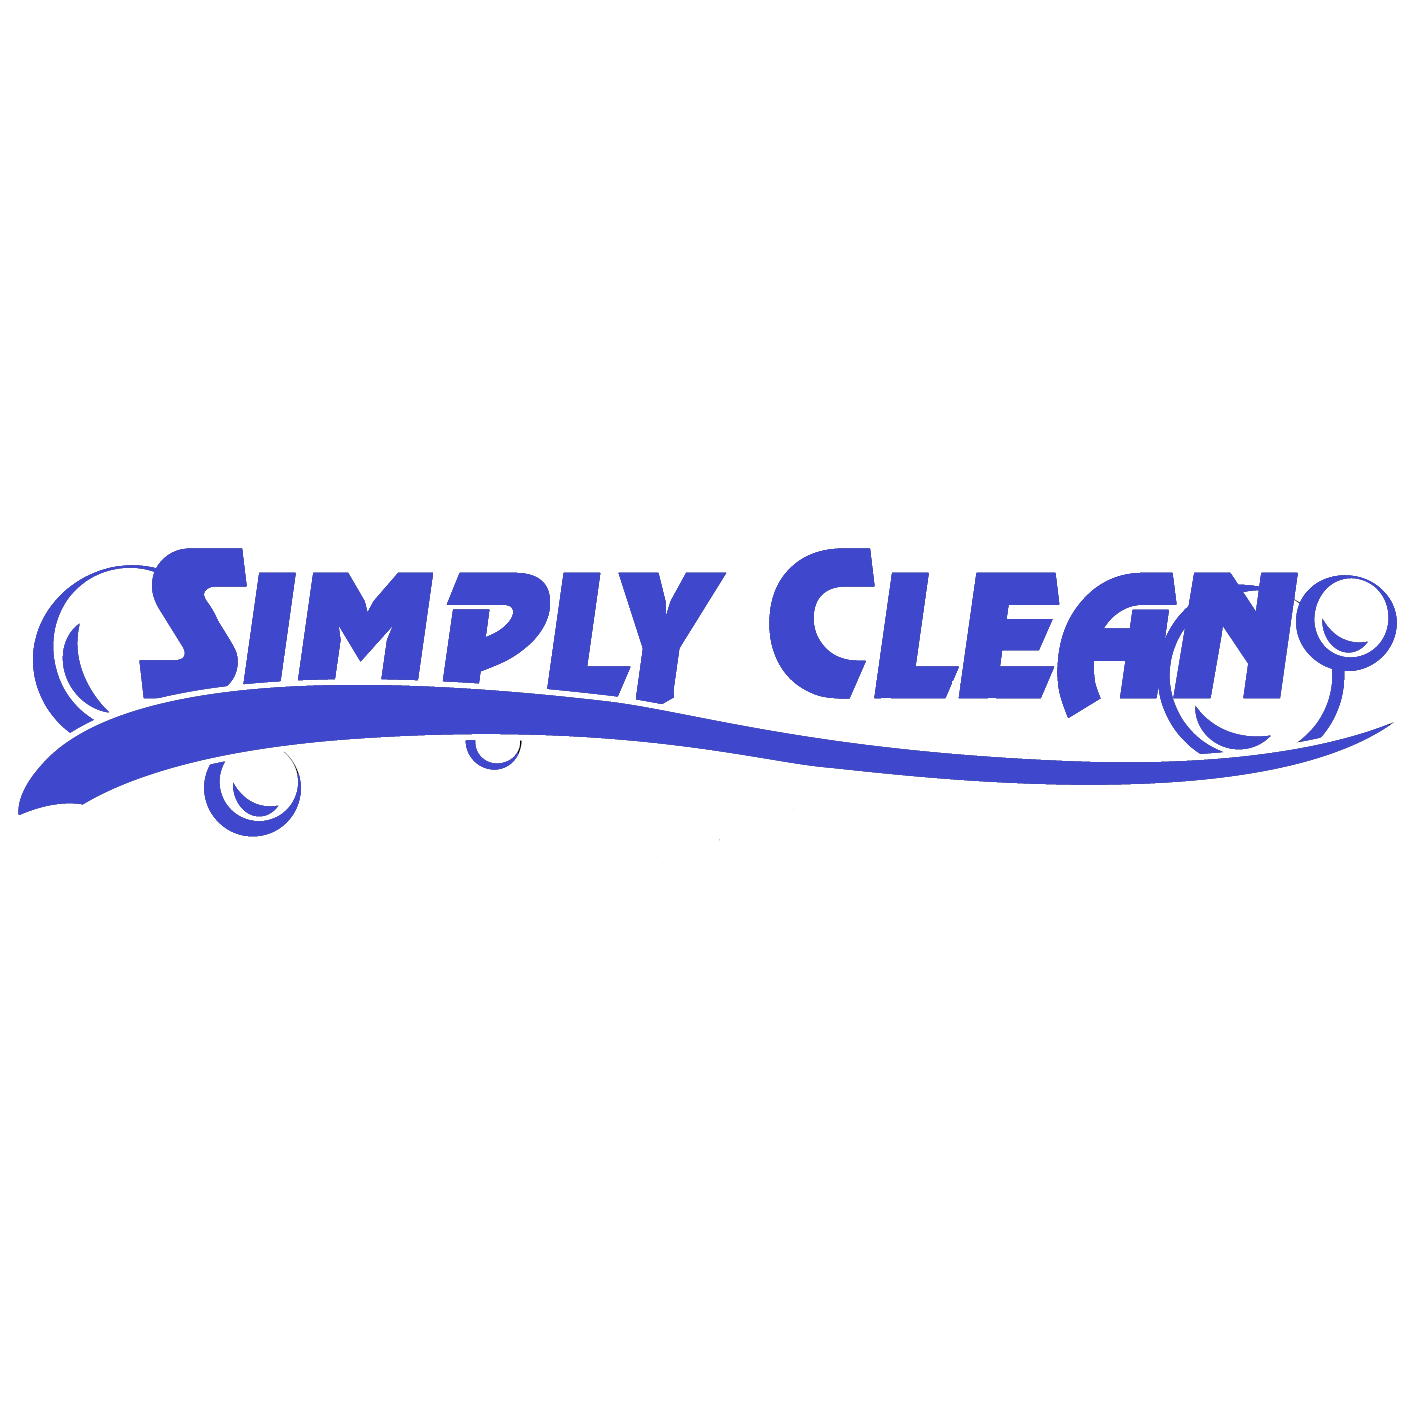 Simply Clean of the QC llc